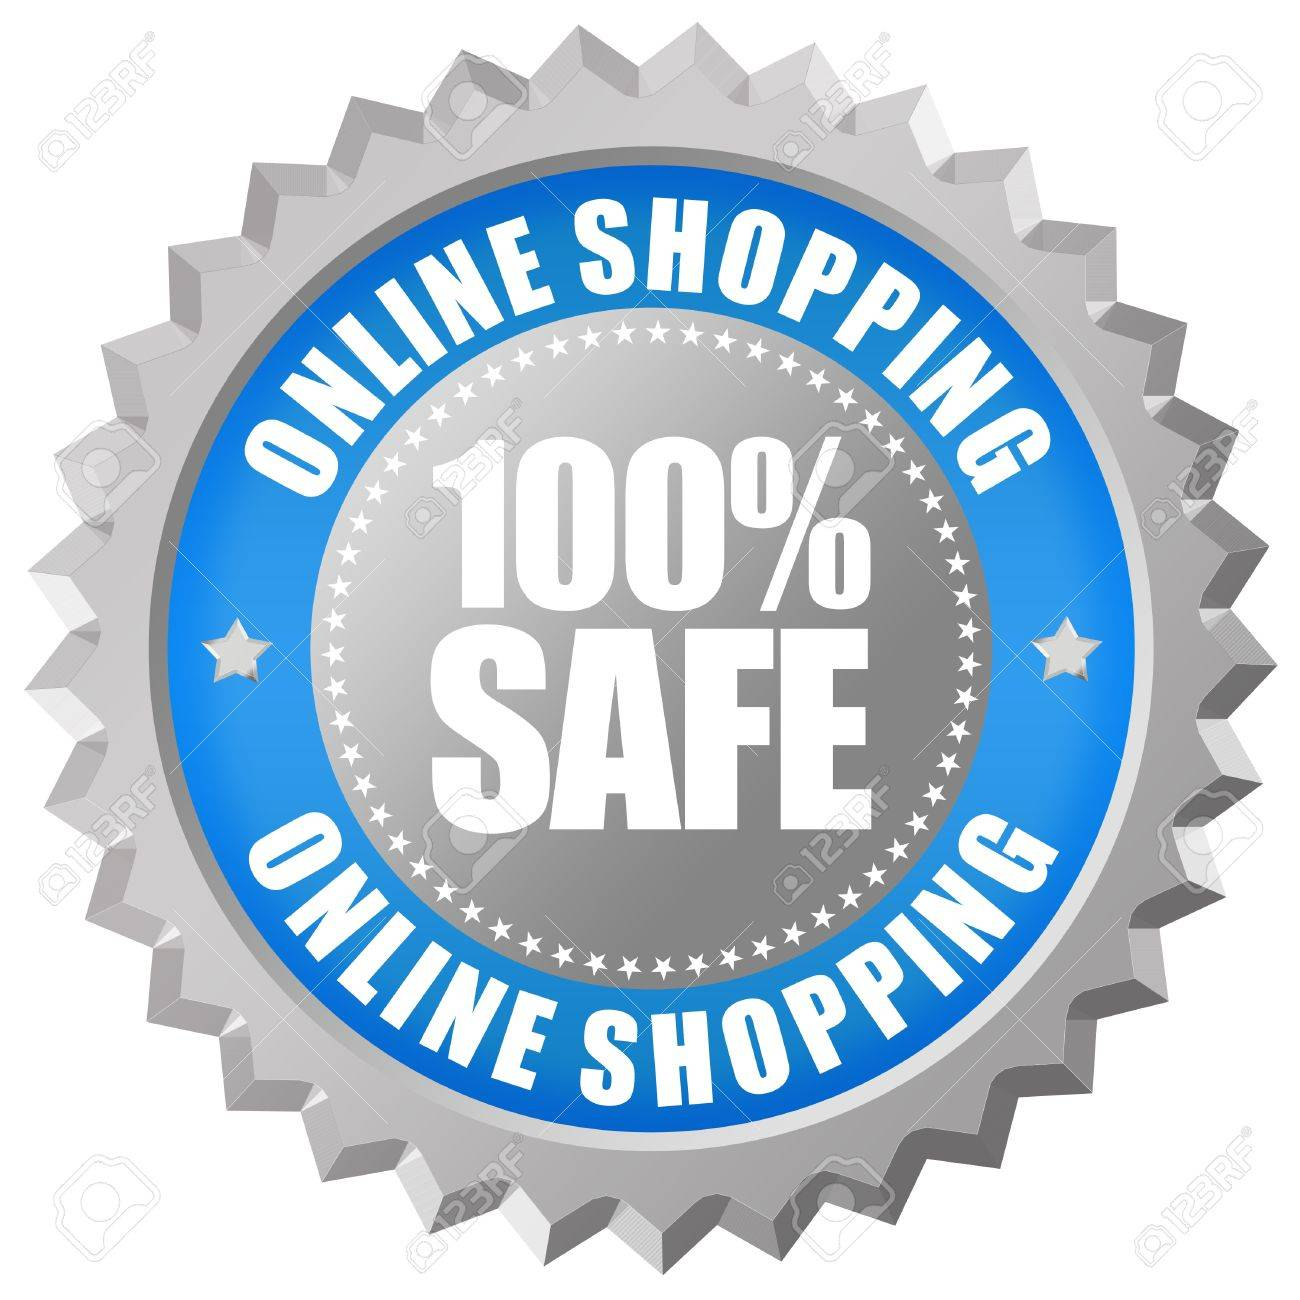 100% safe online shopping